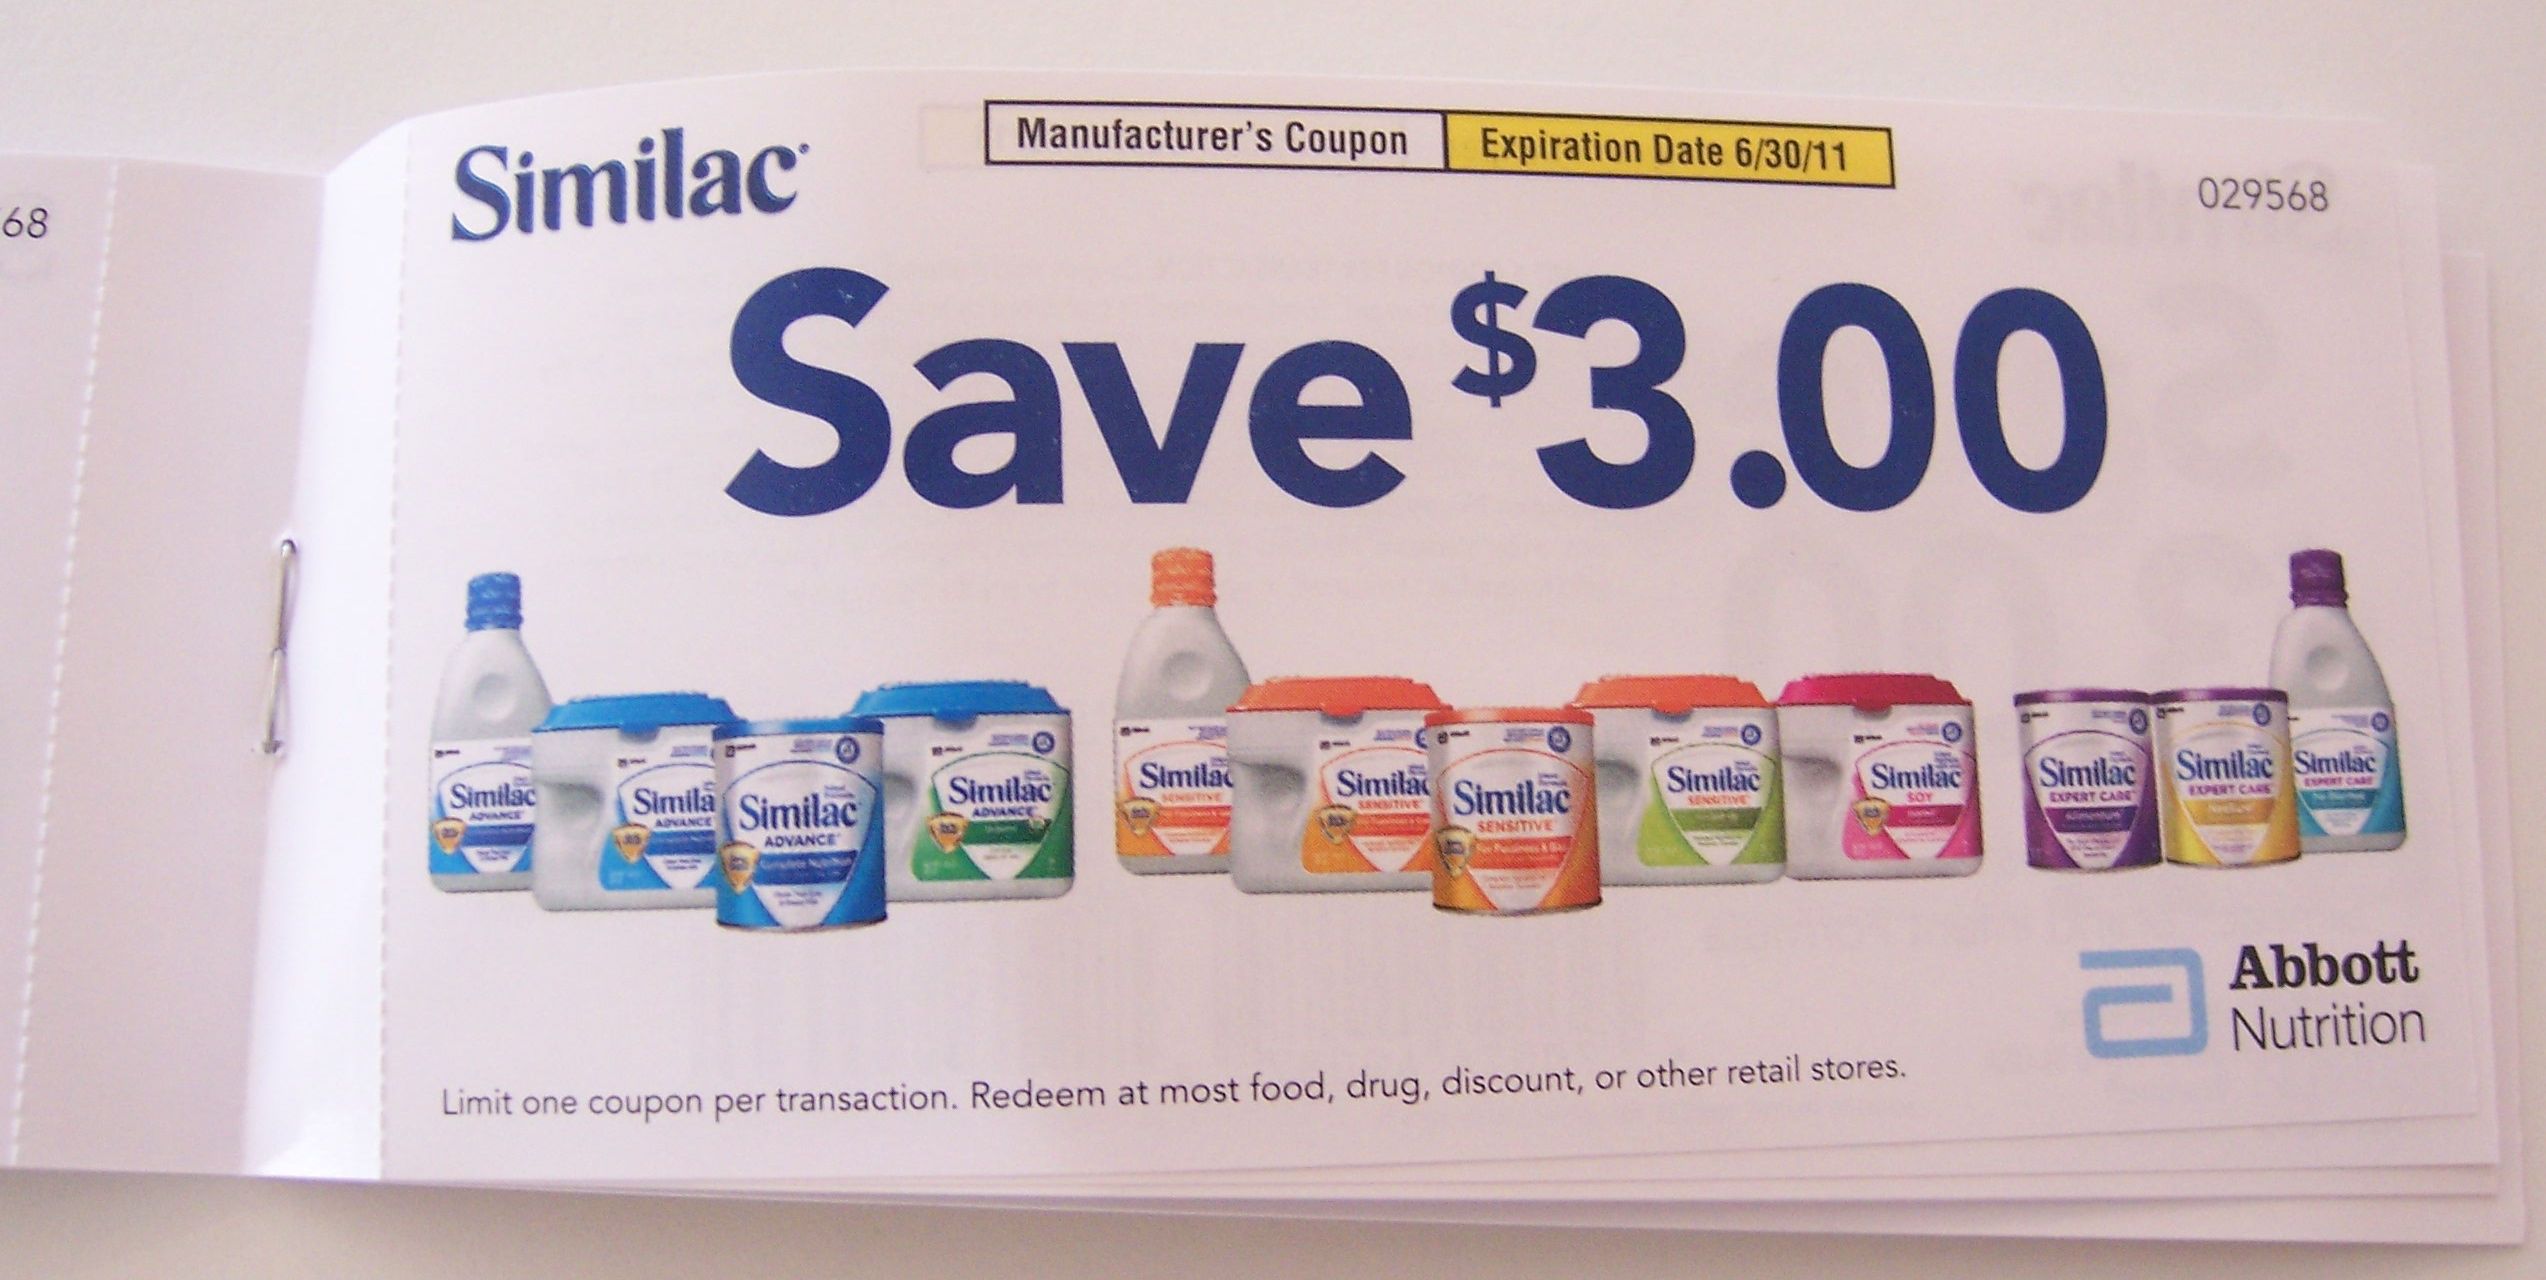 Giveaway: $30 Similac Coupon Book | Living Rich With Coupons®Living - Free Printable Similac Coupons Online